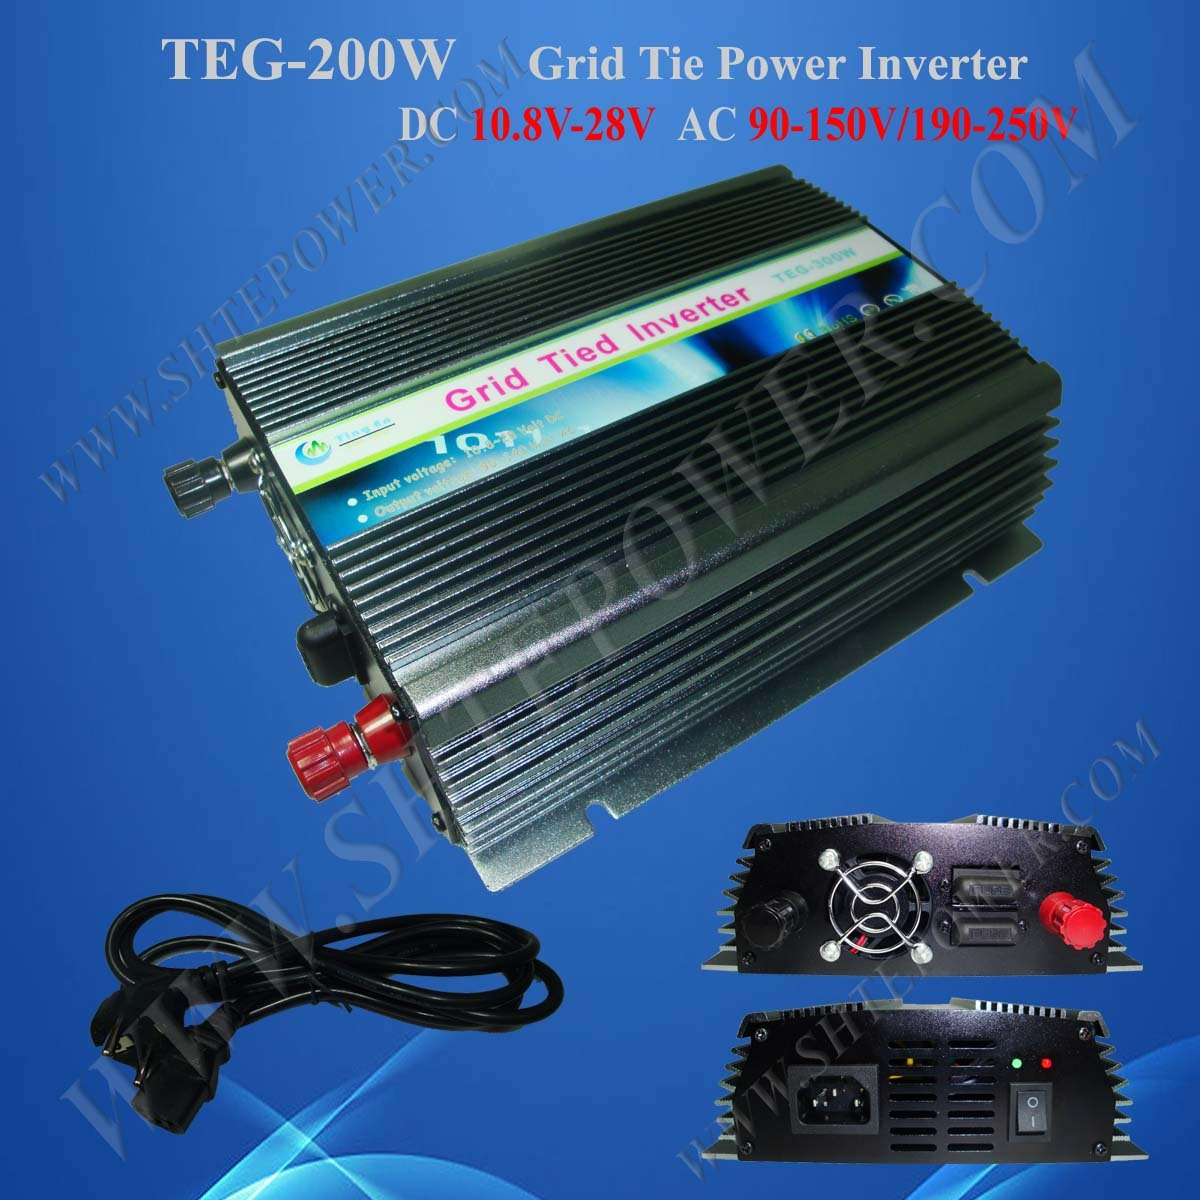 200w micro inverter 200w grid connected solar inverter dc to ac 110v inverter solar solar power on grid tie mini 300w inverter with mppt funciton dc 10 8 30v input to ac output no extra shipping fee